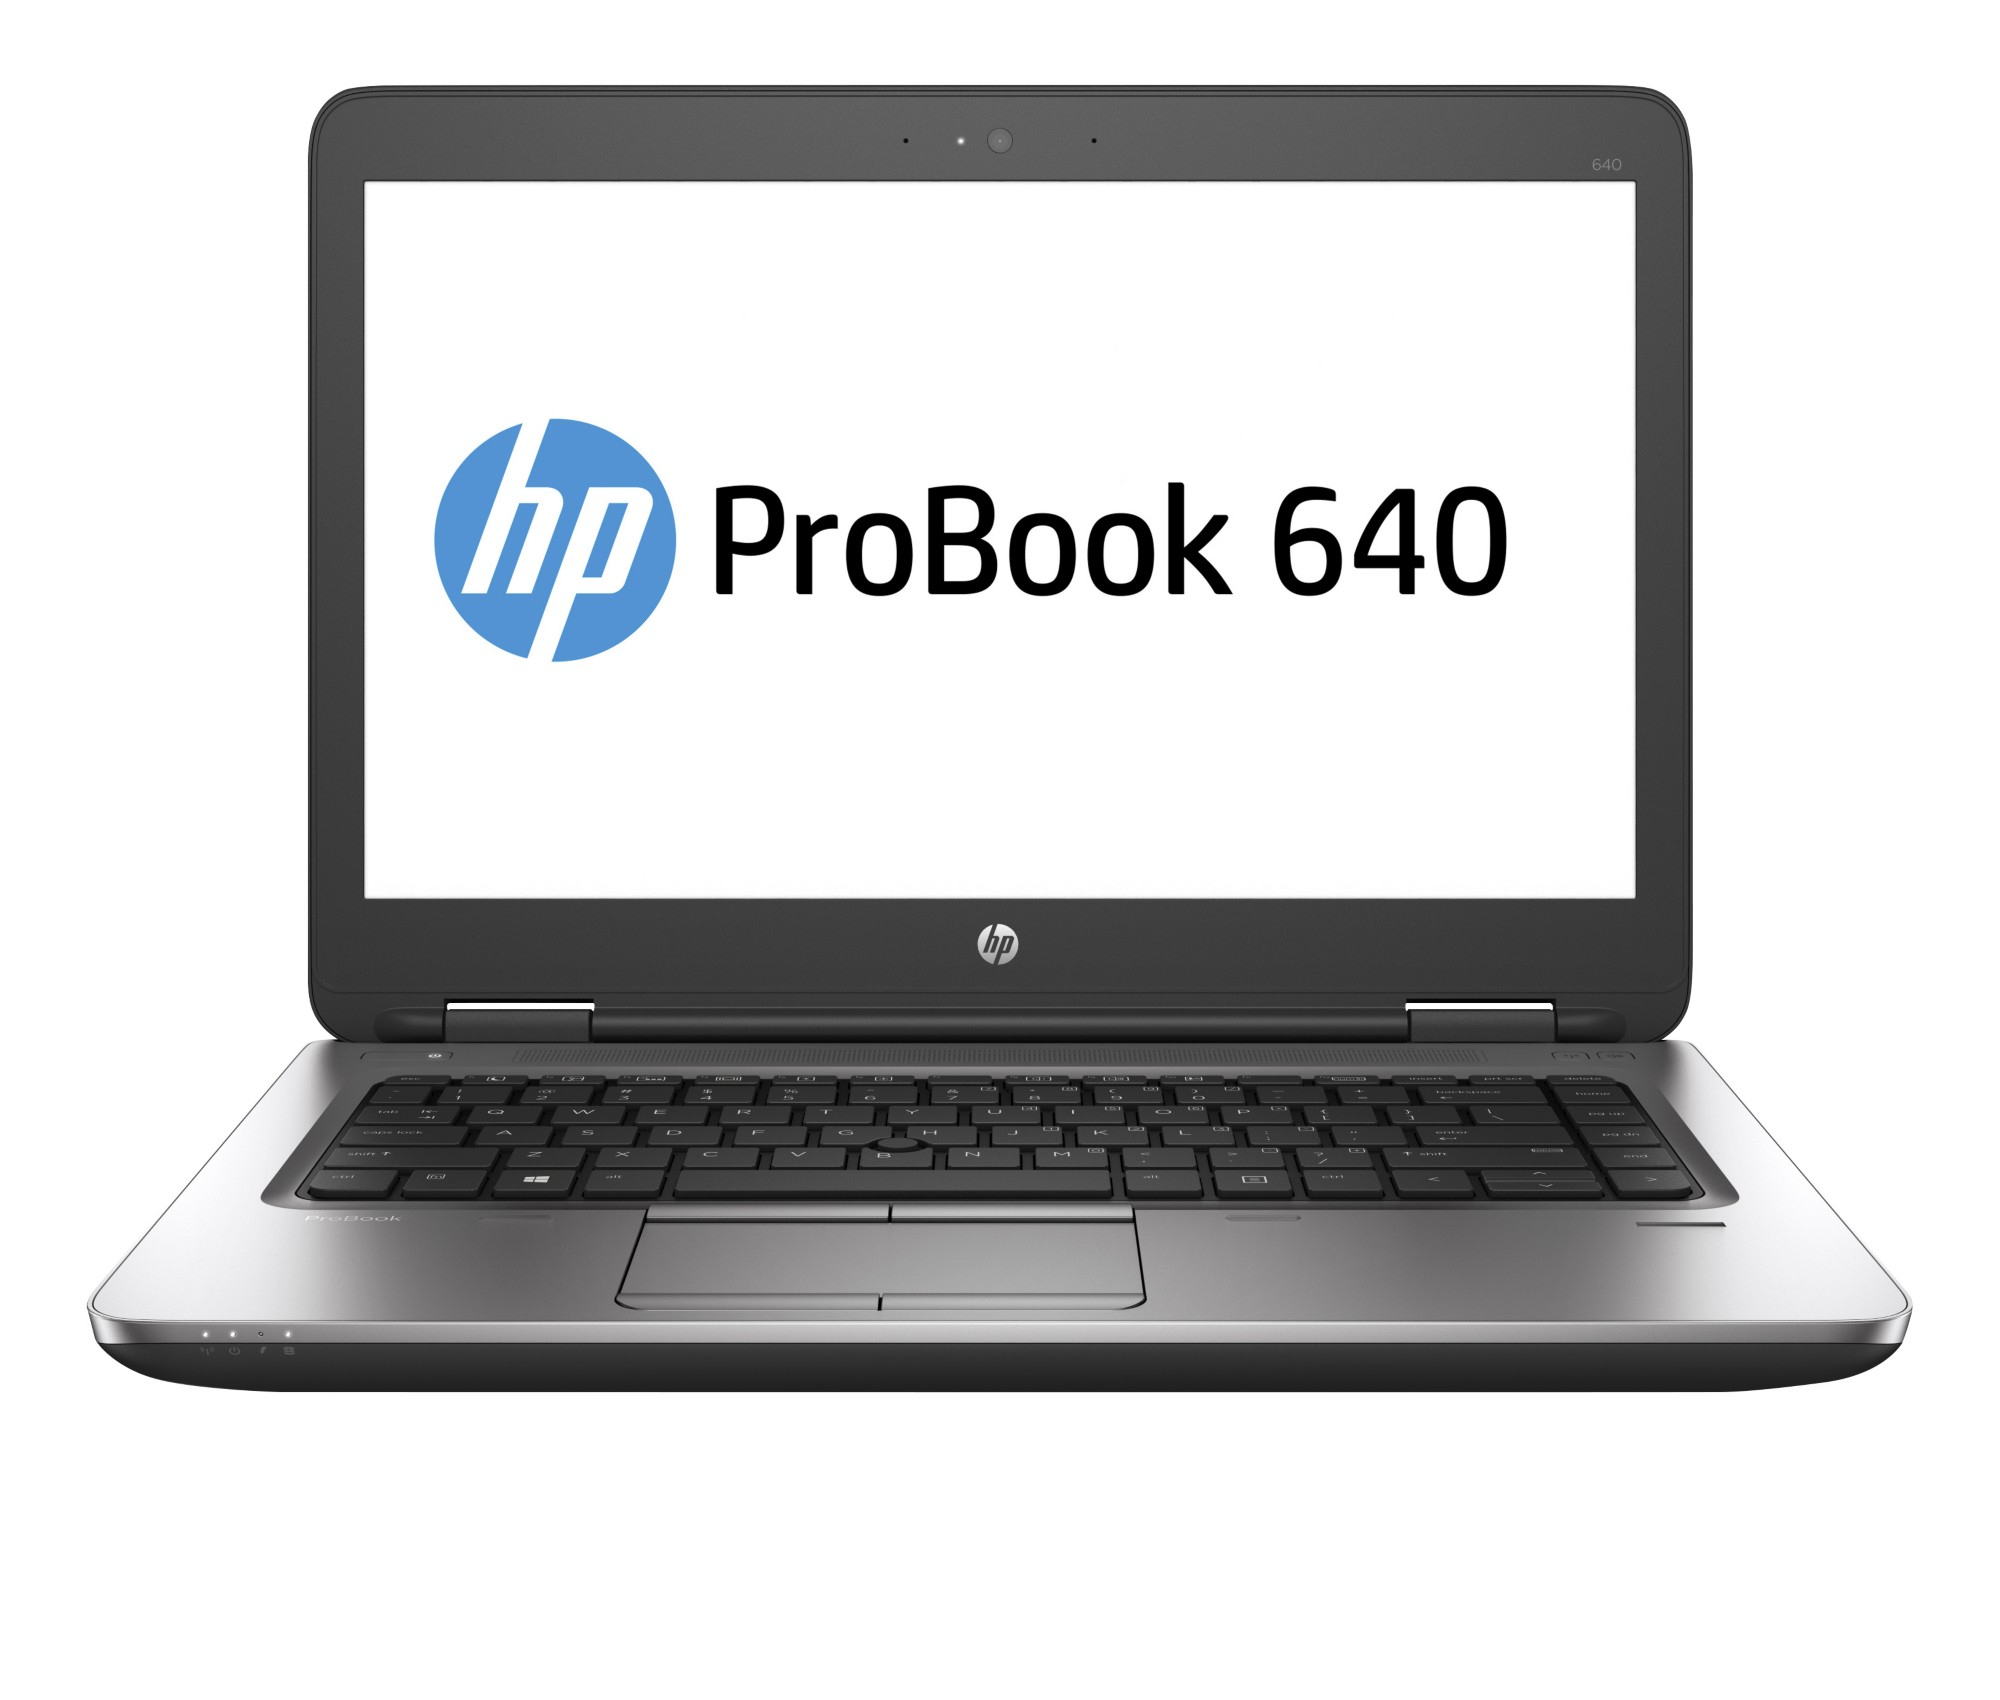 HP ProBook 640 G2 Notebook PC